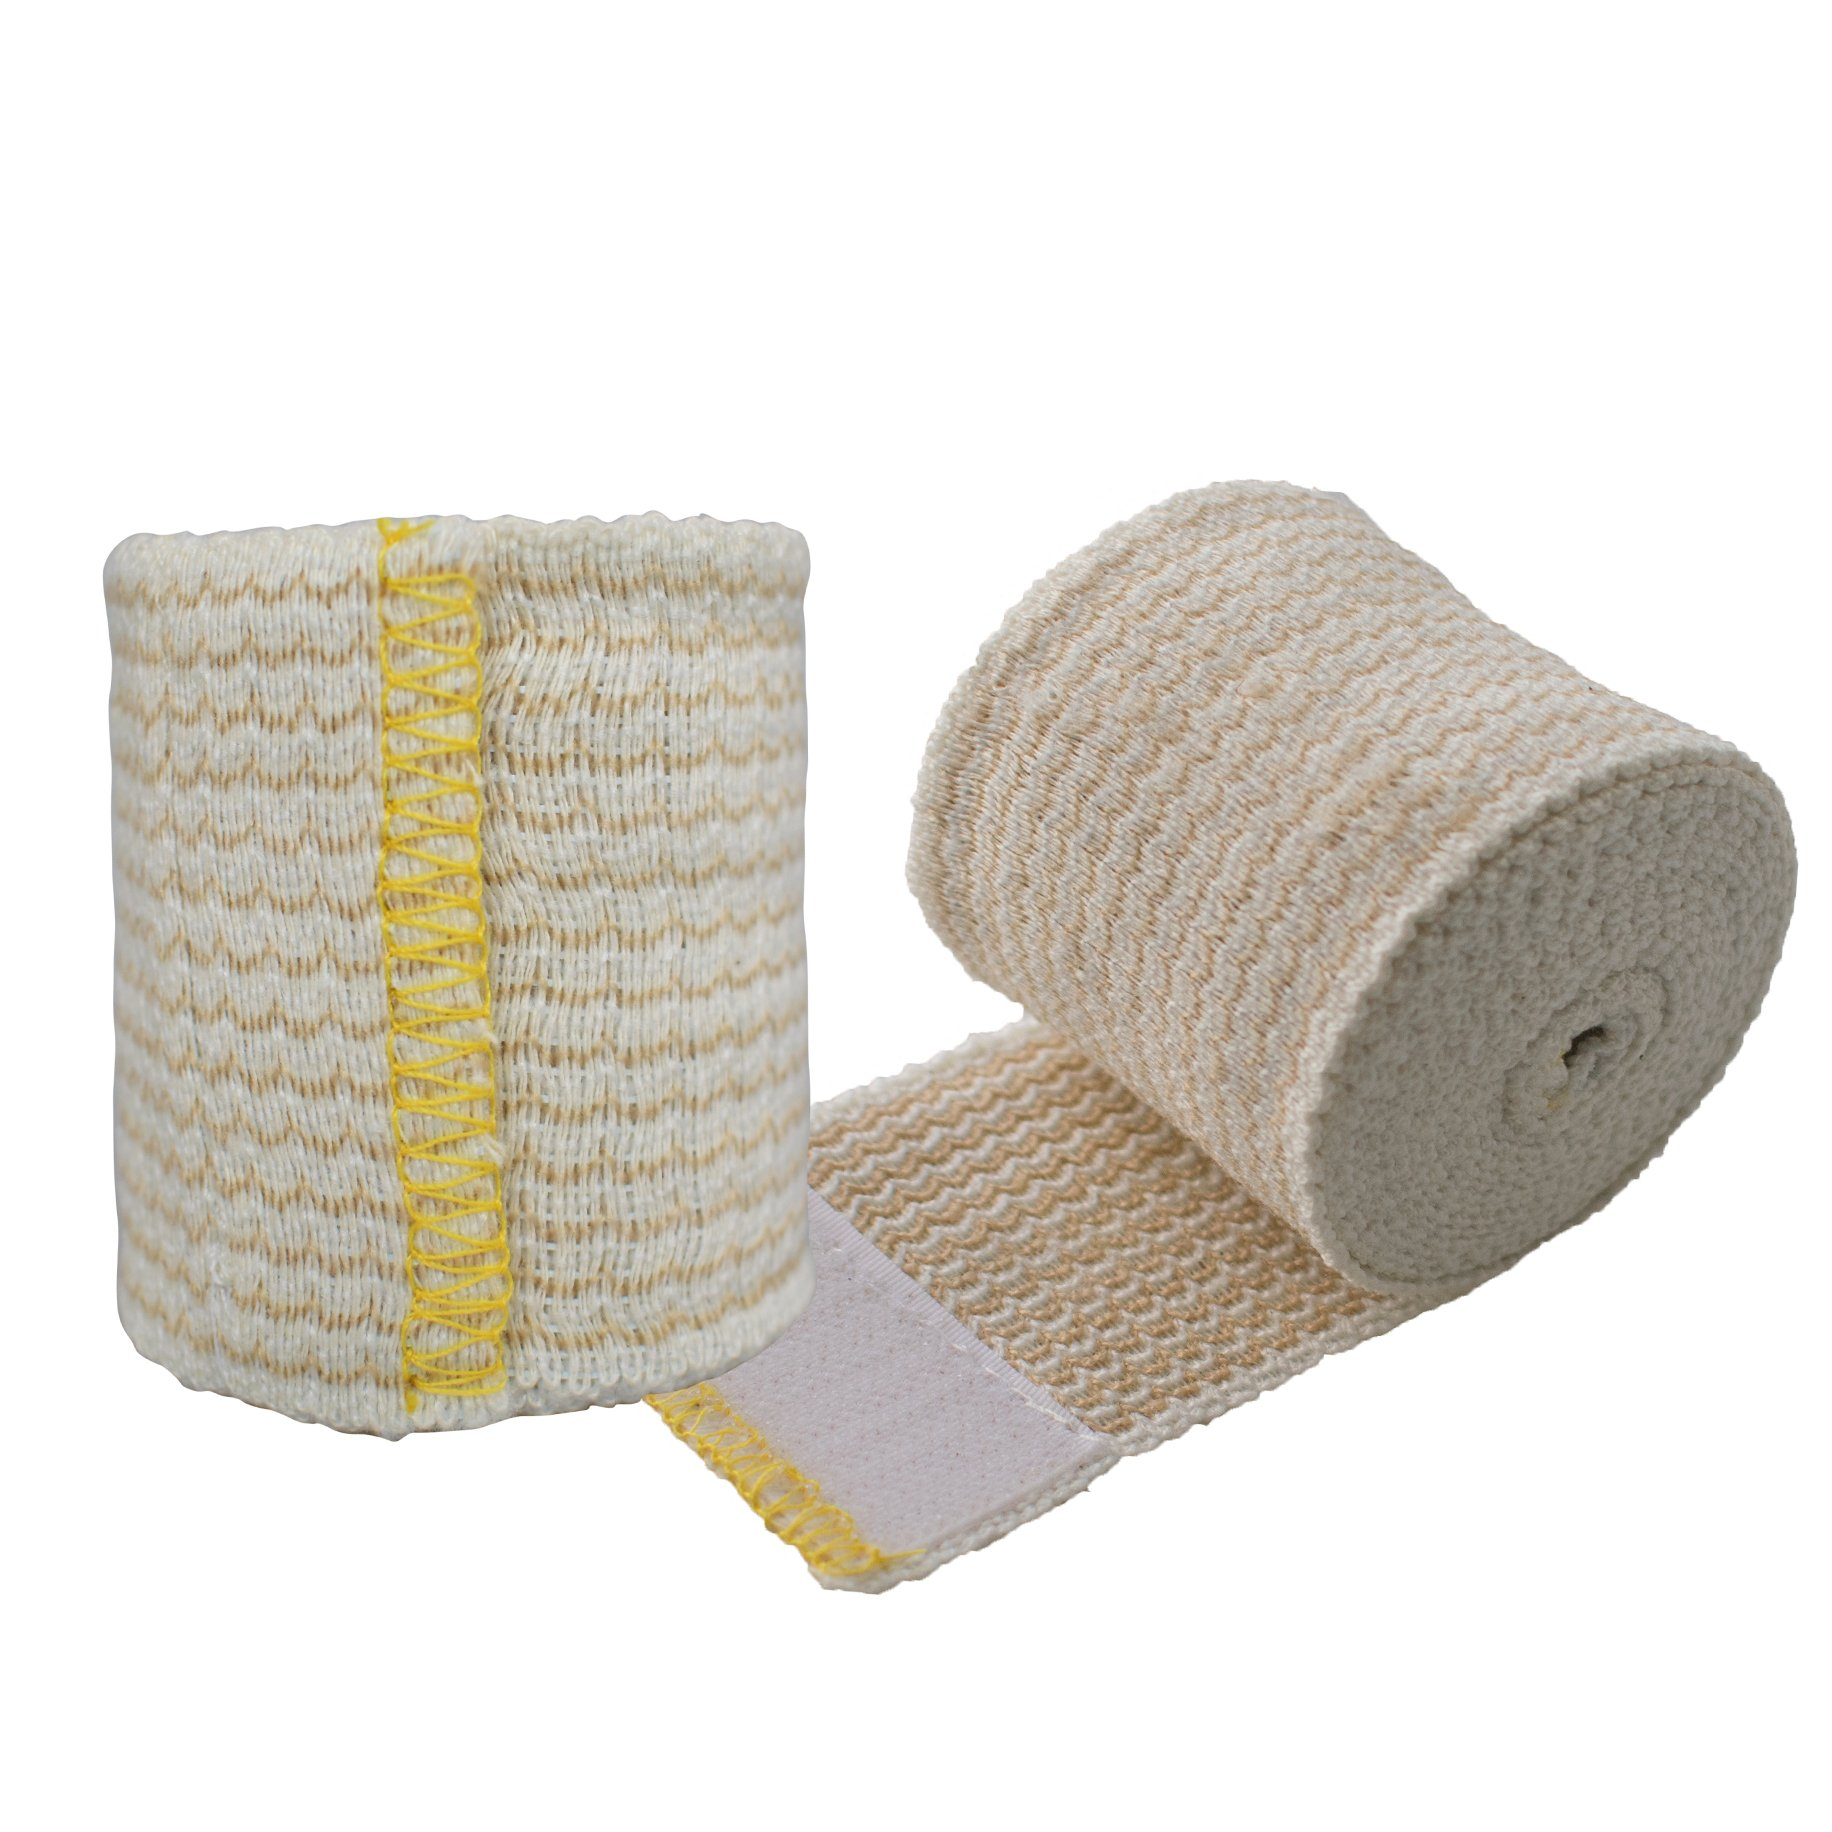 Nexskin Forever American Cotton Elastic Bandage Wrap with Hook and Loop Closure, 2'' Width (2 Pack)